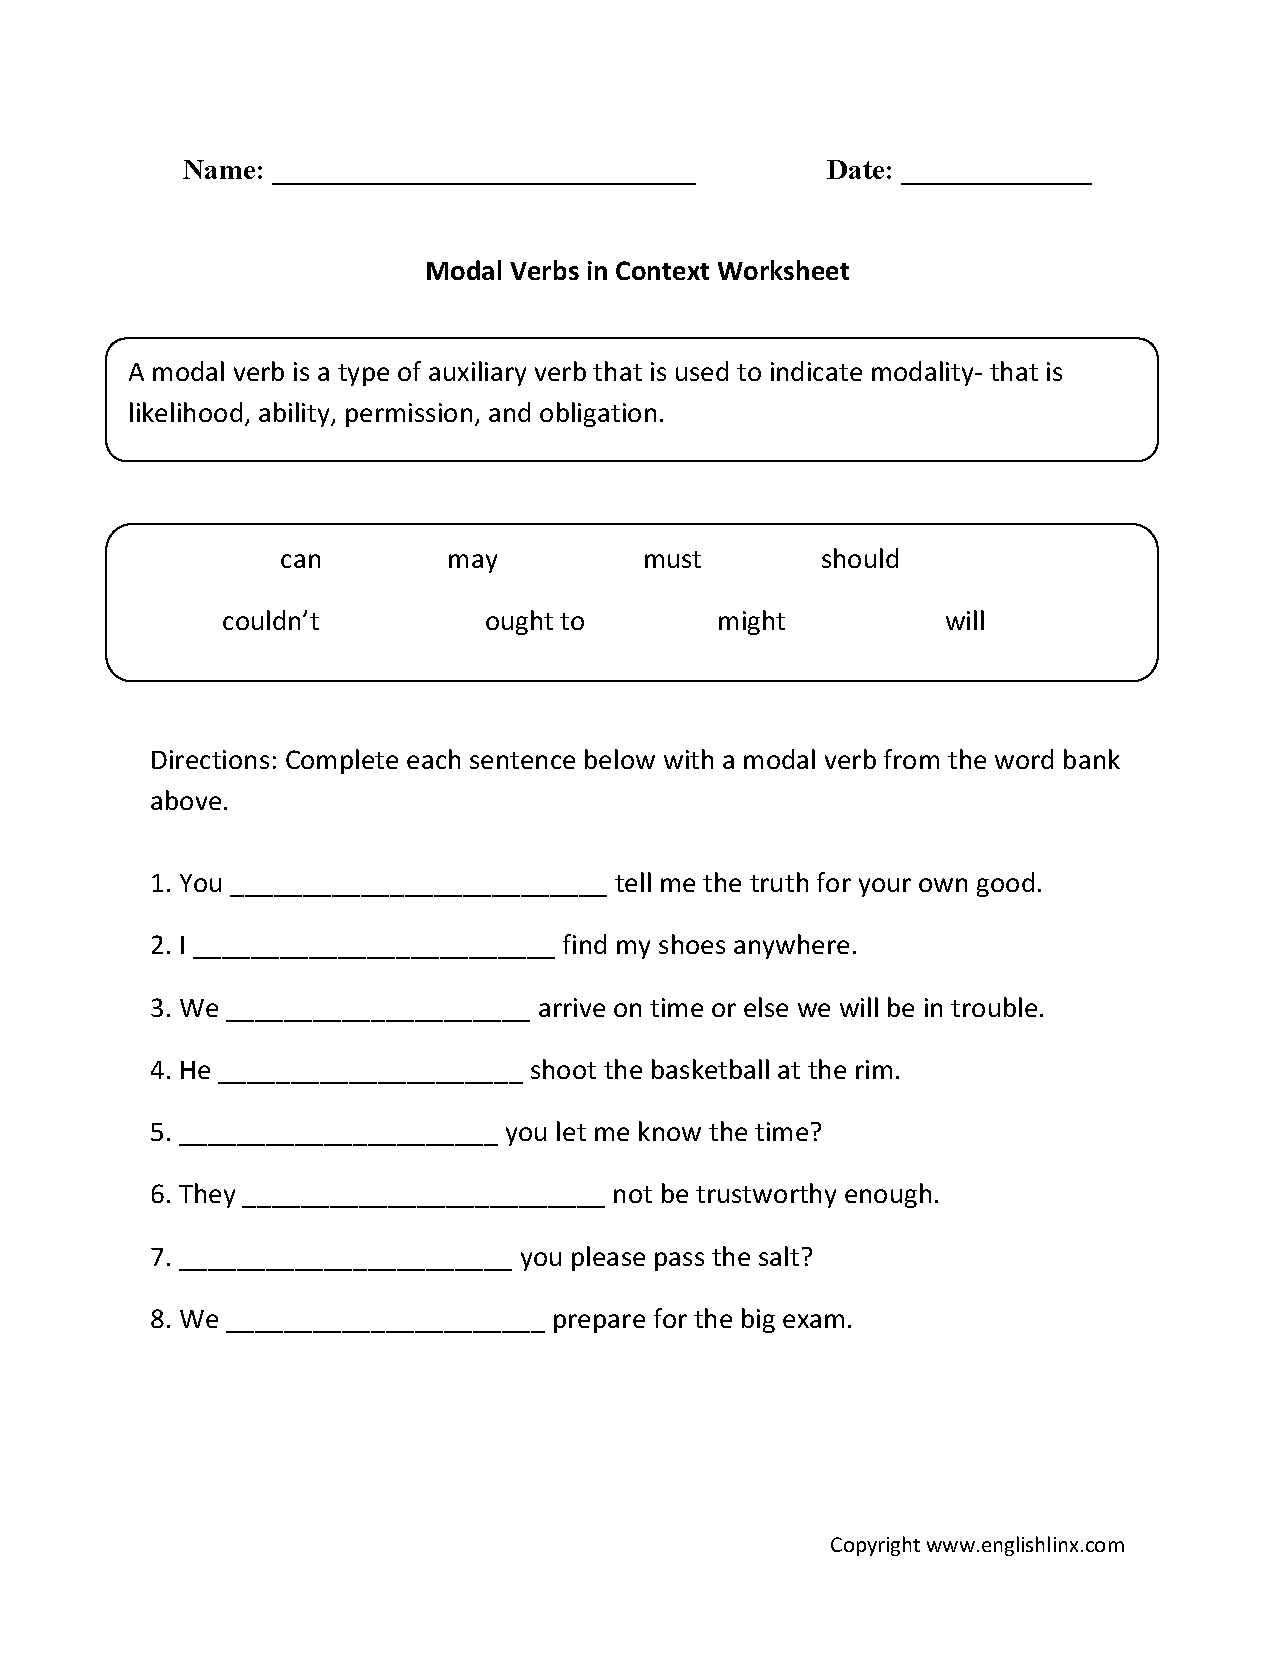 Aldiablosus  Remarkable Worksheet For Verbs  Coffemix With Fair Englishlinxcom  Verbs Worksheets With Astounding Math Worksheet Online Also Length Worksheets For Kindergarten In Addition Querer Worksheet And Making Inferences Worksheet Th Grade As Well As Making Inferences Worksheets Grade  Additionally Science Activity Worksheets From Coffemixcom With Aldiablosus  Fair Worksheet For Verbs  Coffemix With Astounding Englishlinxcom  Verbs Worksheets And Remarkable Math Worksheet Online Also Length Worksheets For Kindergarten In Addition Querer Worksheet From Coffemixcom